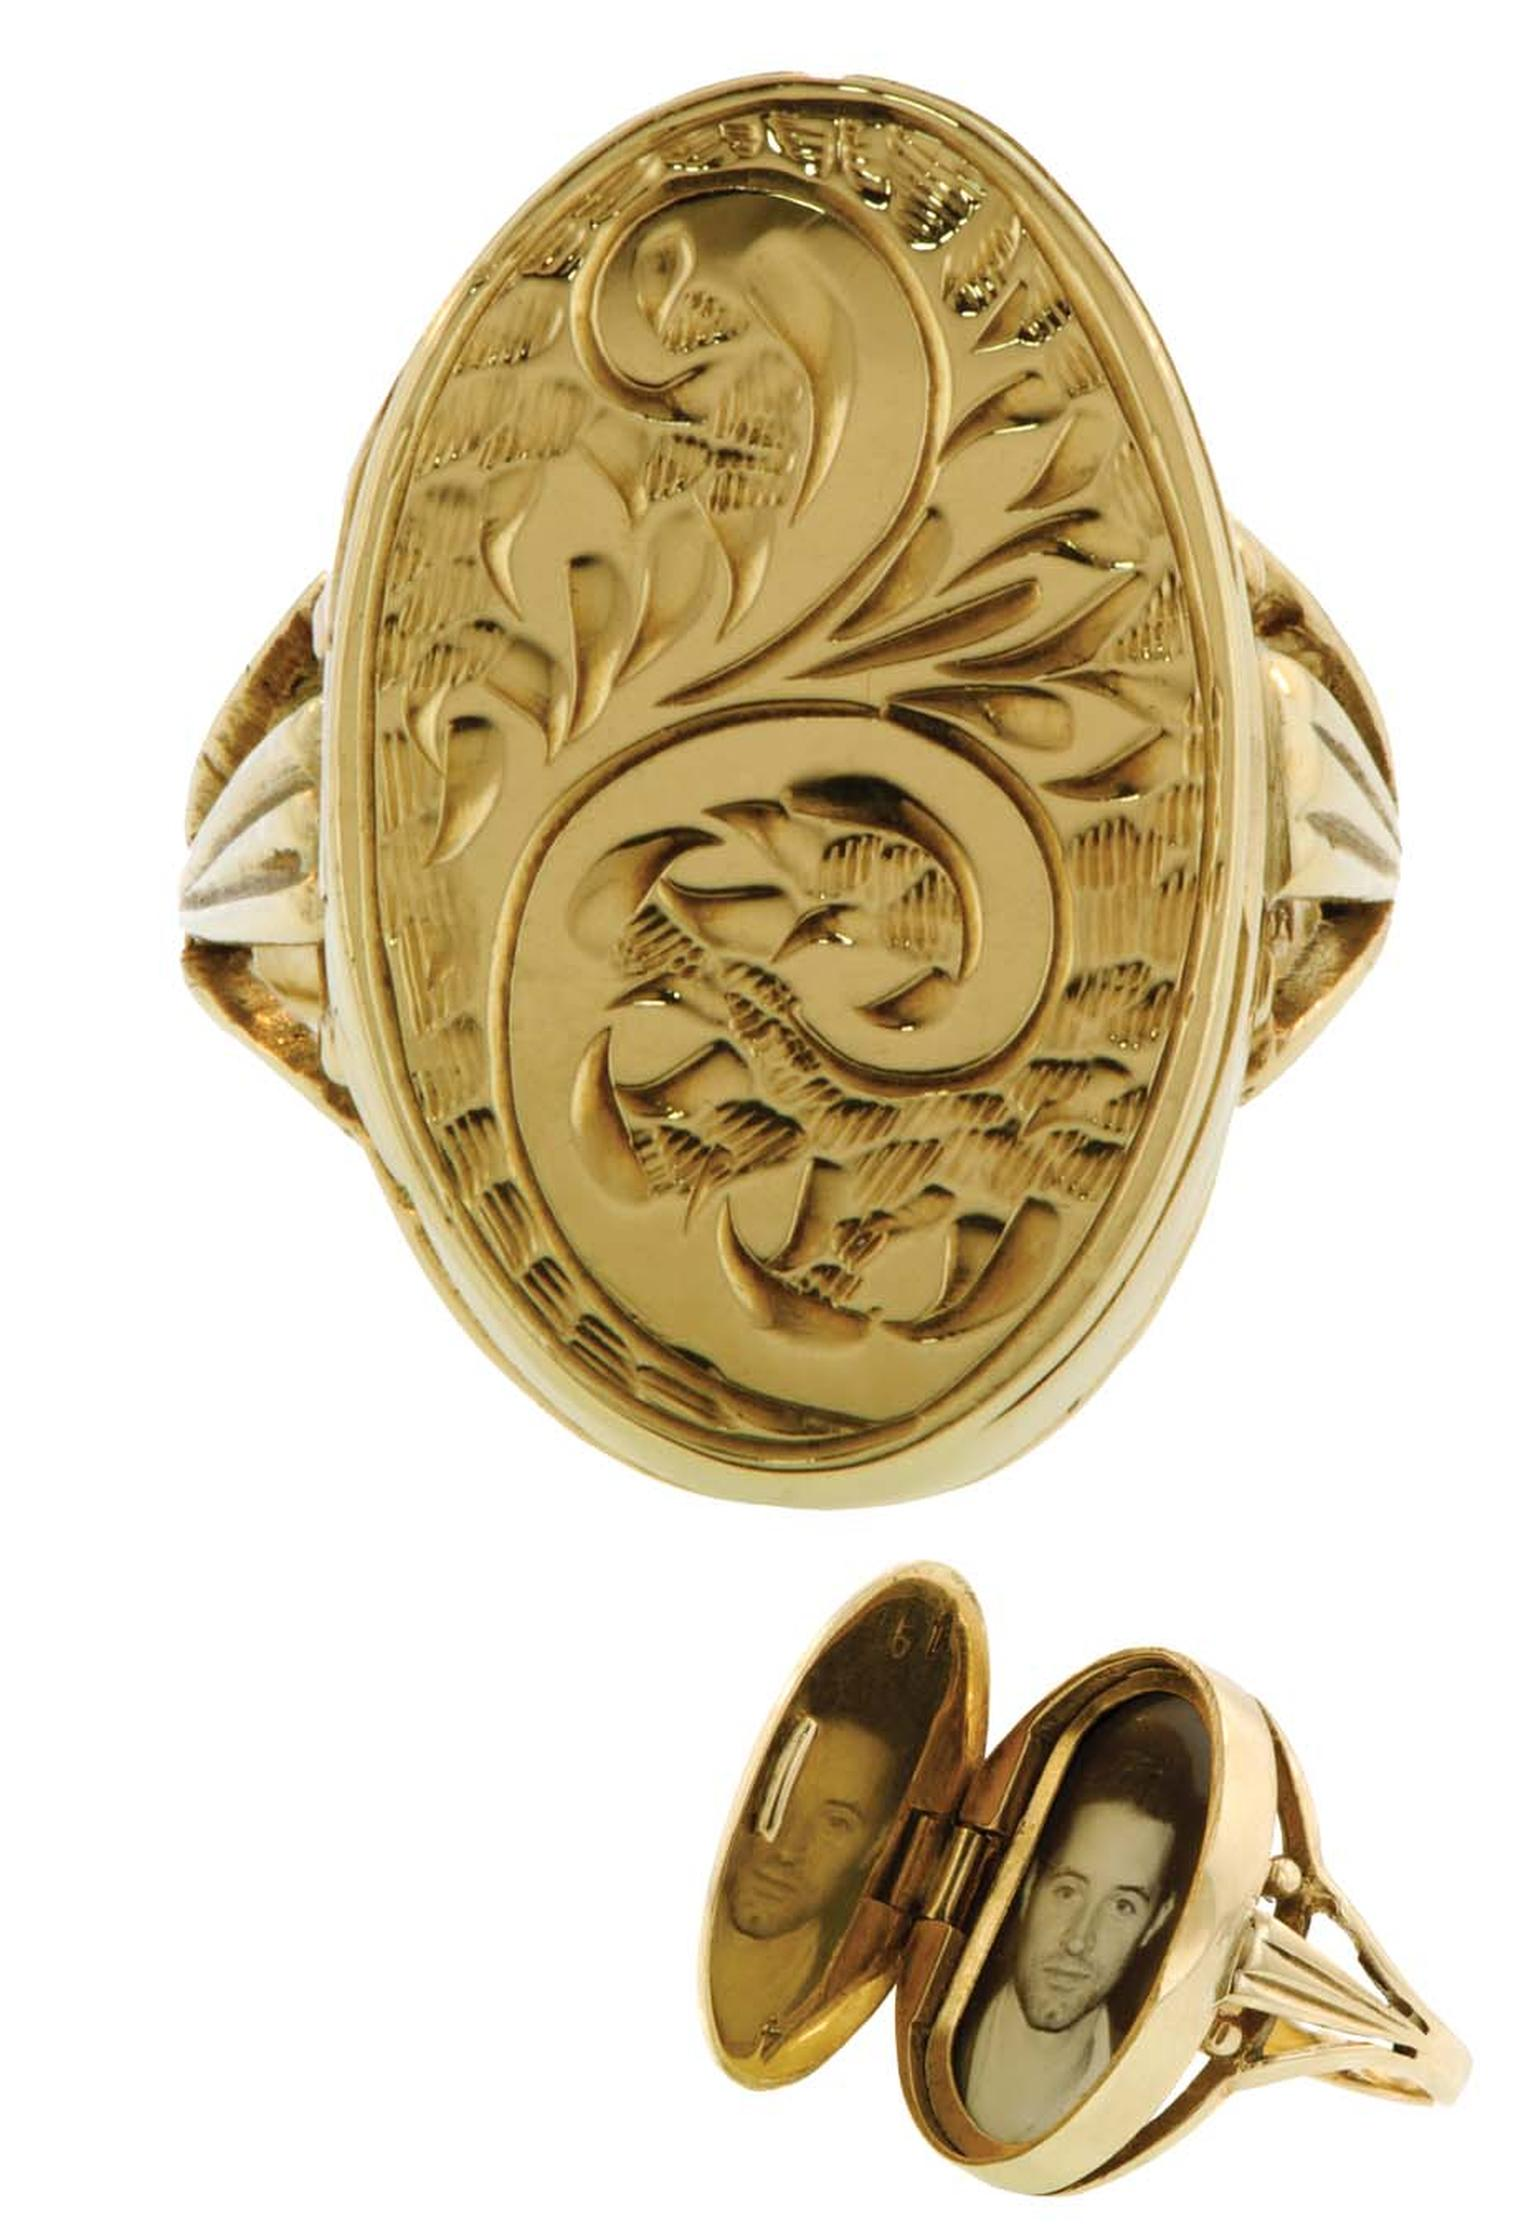 20th-century Locket ring from the private collection of Danielle Miele.